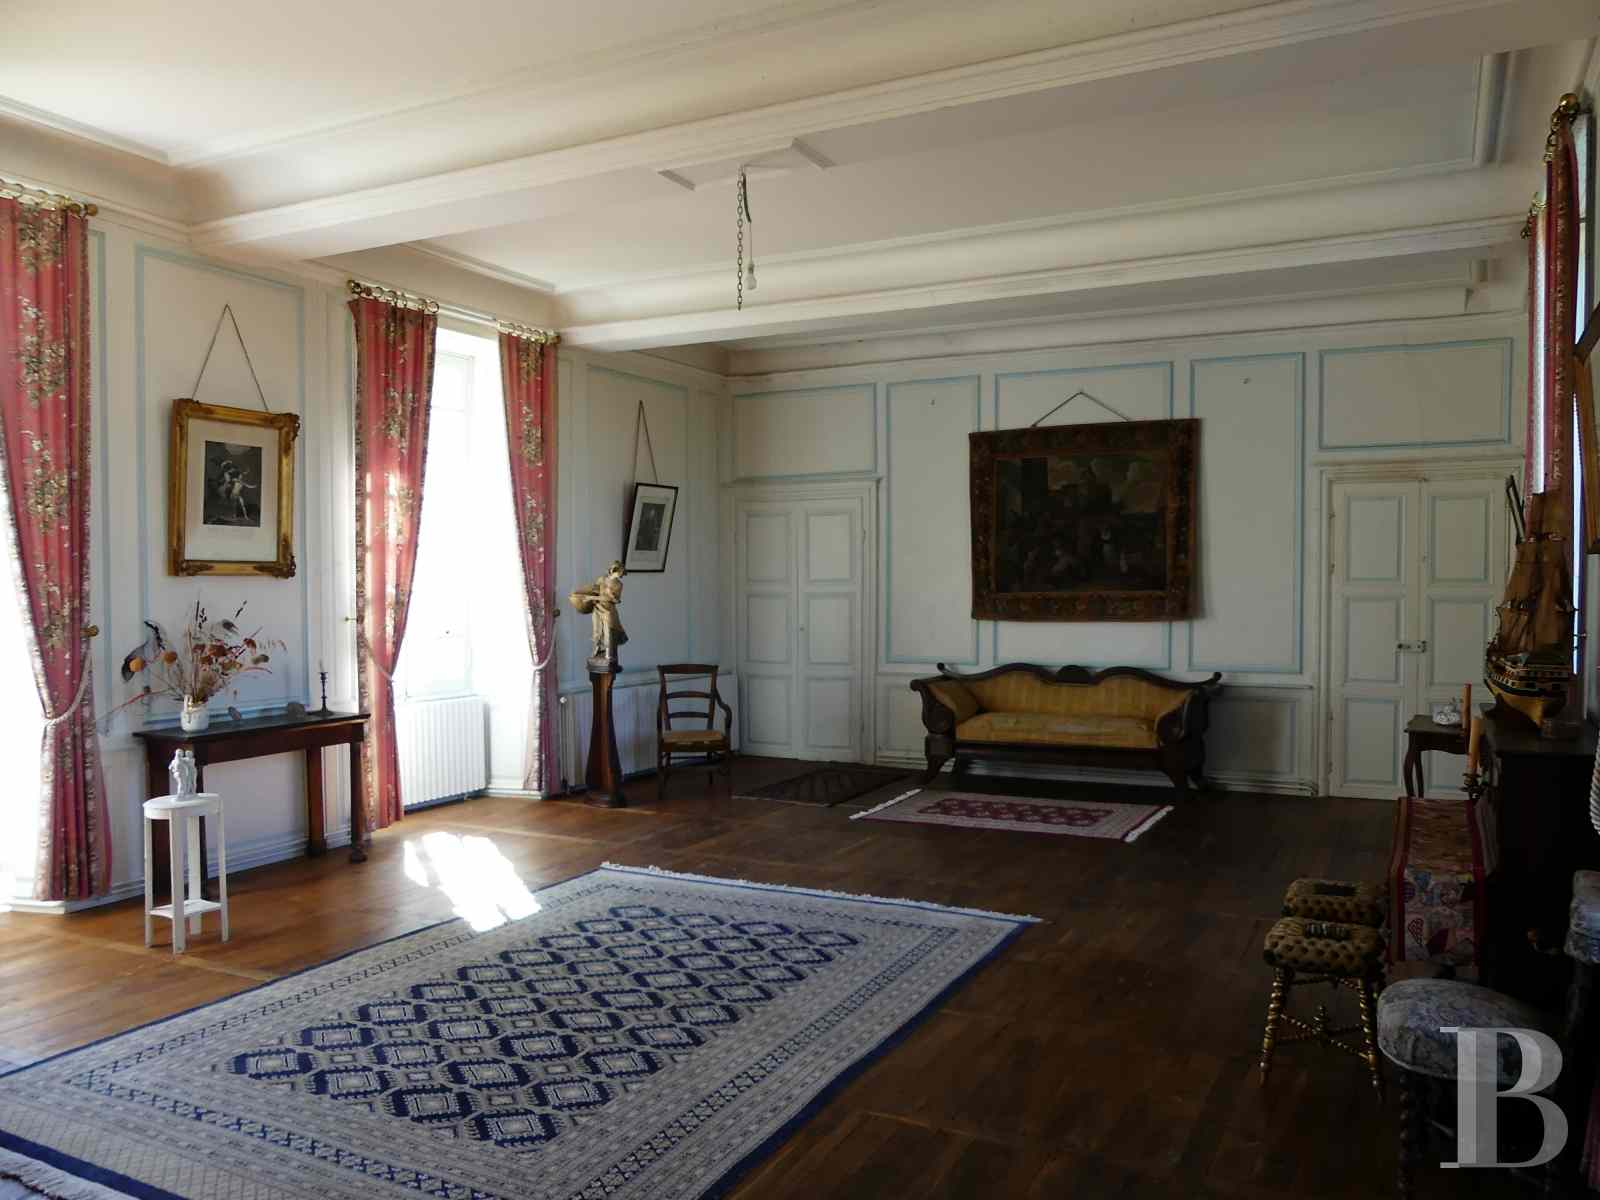 France mansions for sale poitou charentes 18th century - 9 zoom